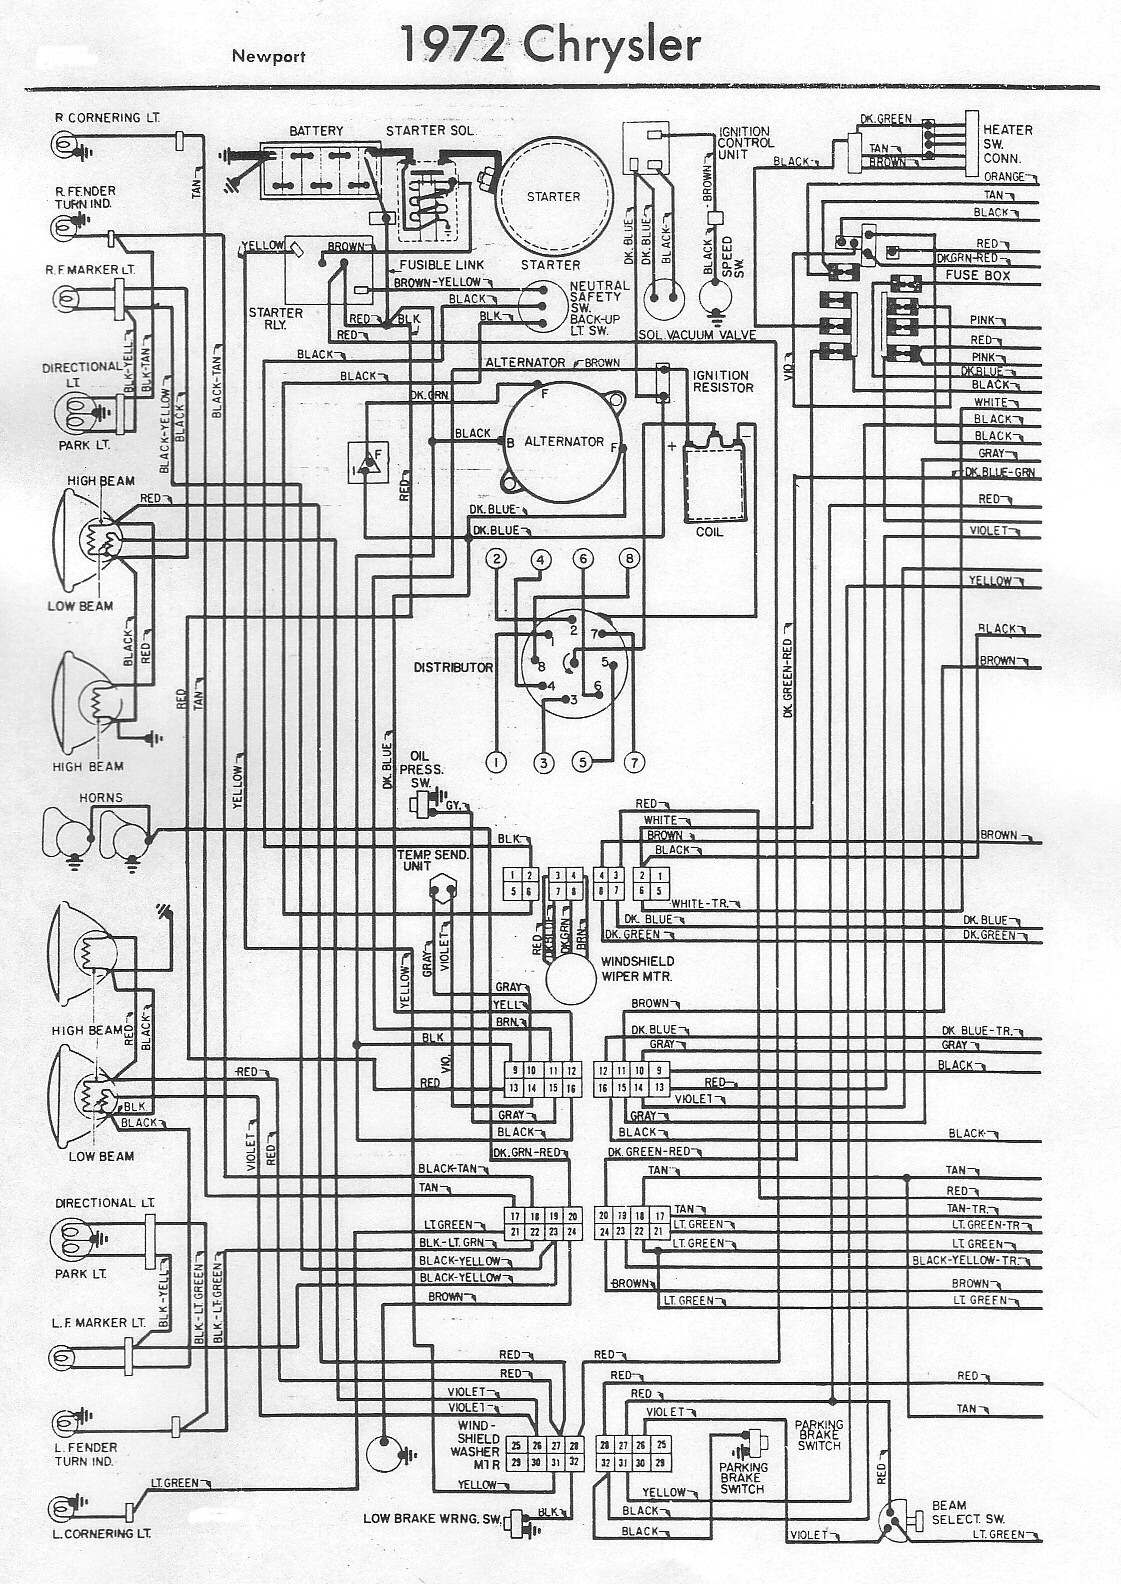 october 2011 all about wiring diagrams rh diagramonwiring blogspot com 1966 Caprice Wiring 1966 Chevy Truck Wiring Schematic